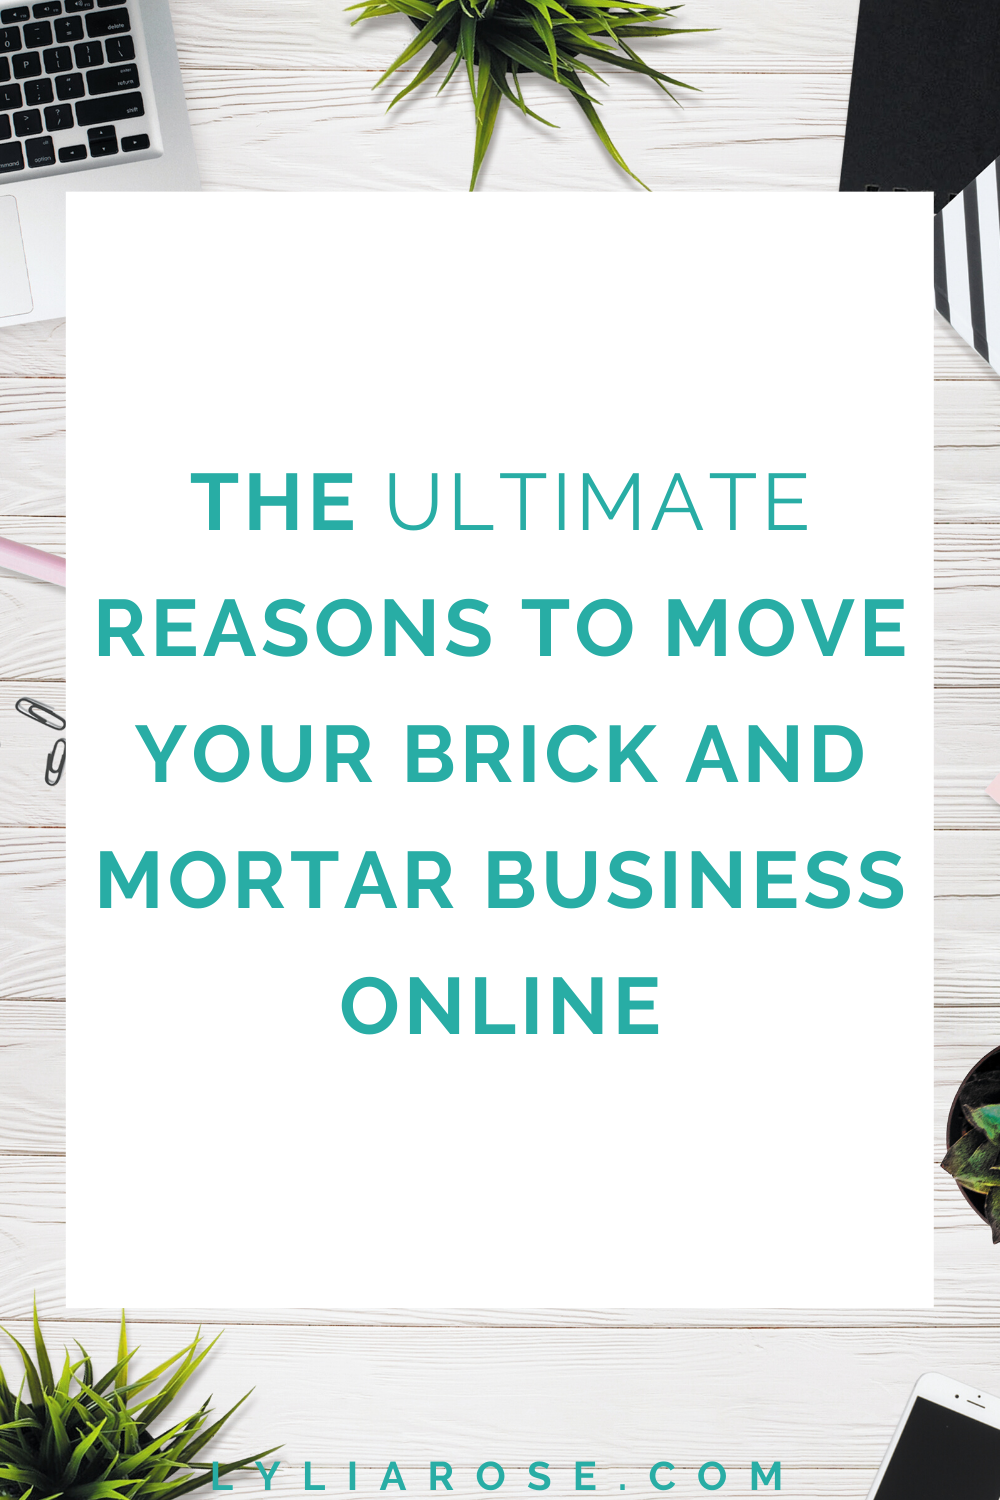 The ultimate reasons to move your brick and mortar business online